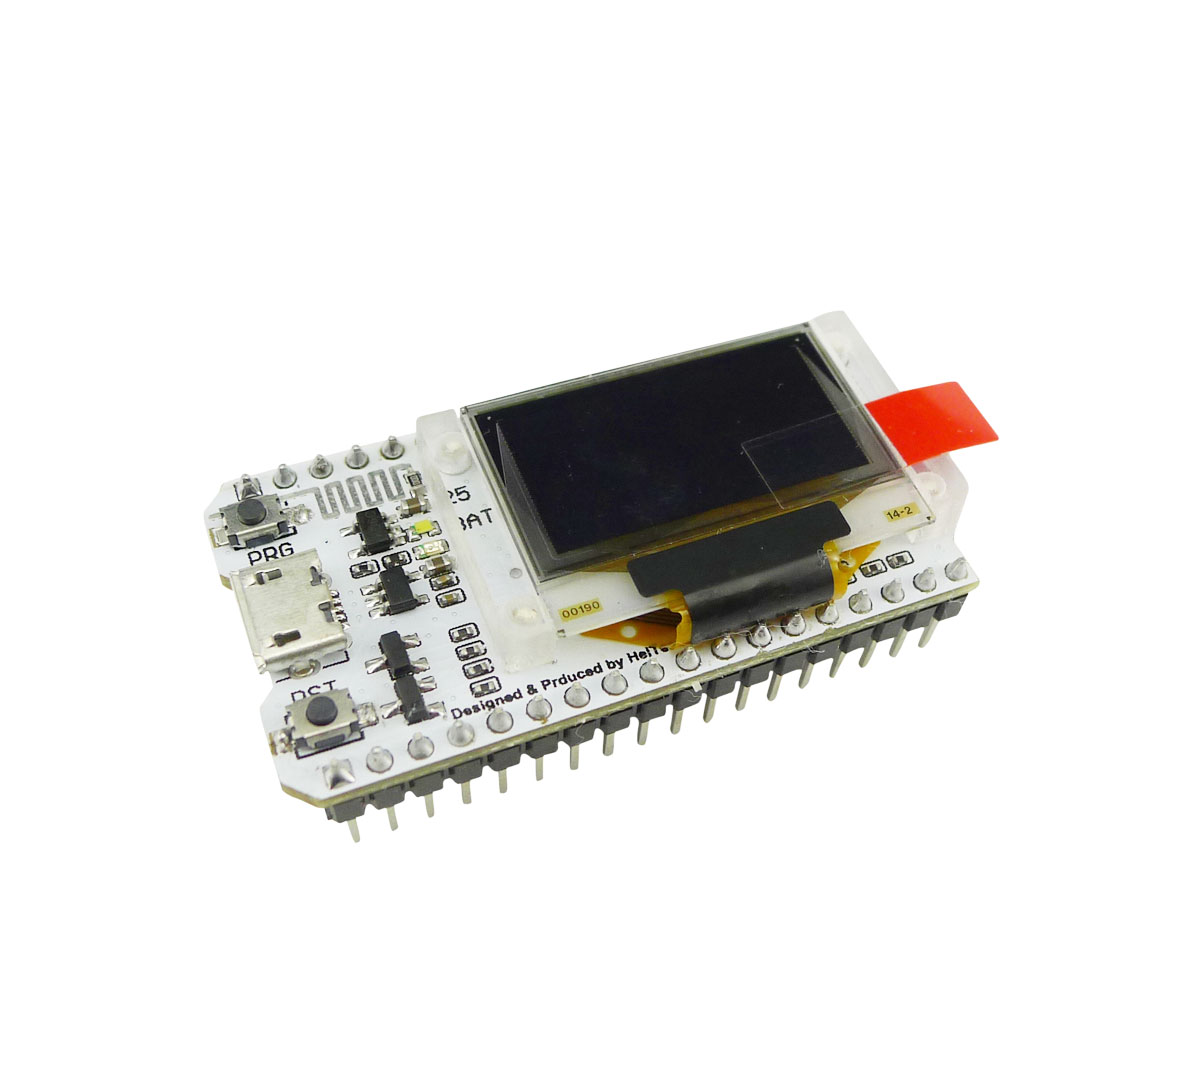 Aihasd 0 96 OLED Display ESP32 With Antenna WIFI Bluetooth